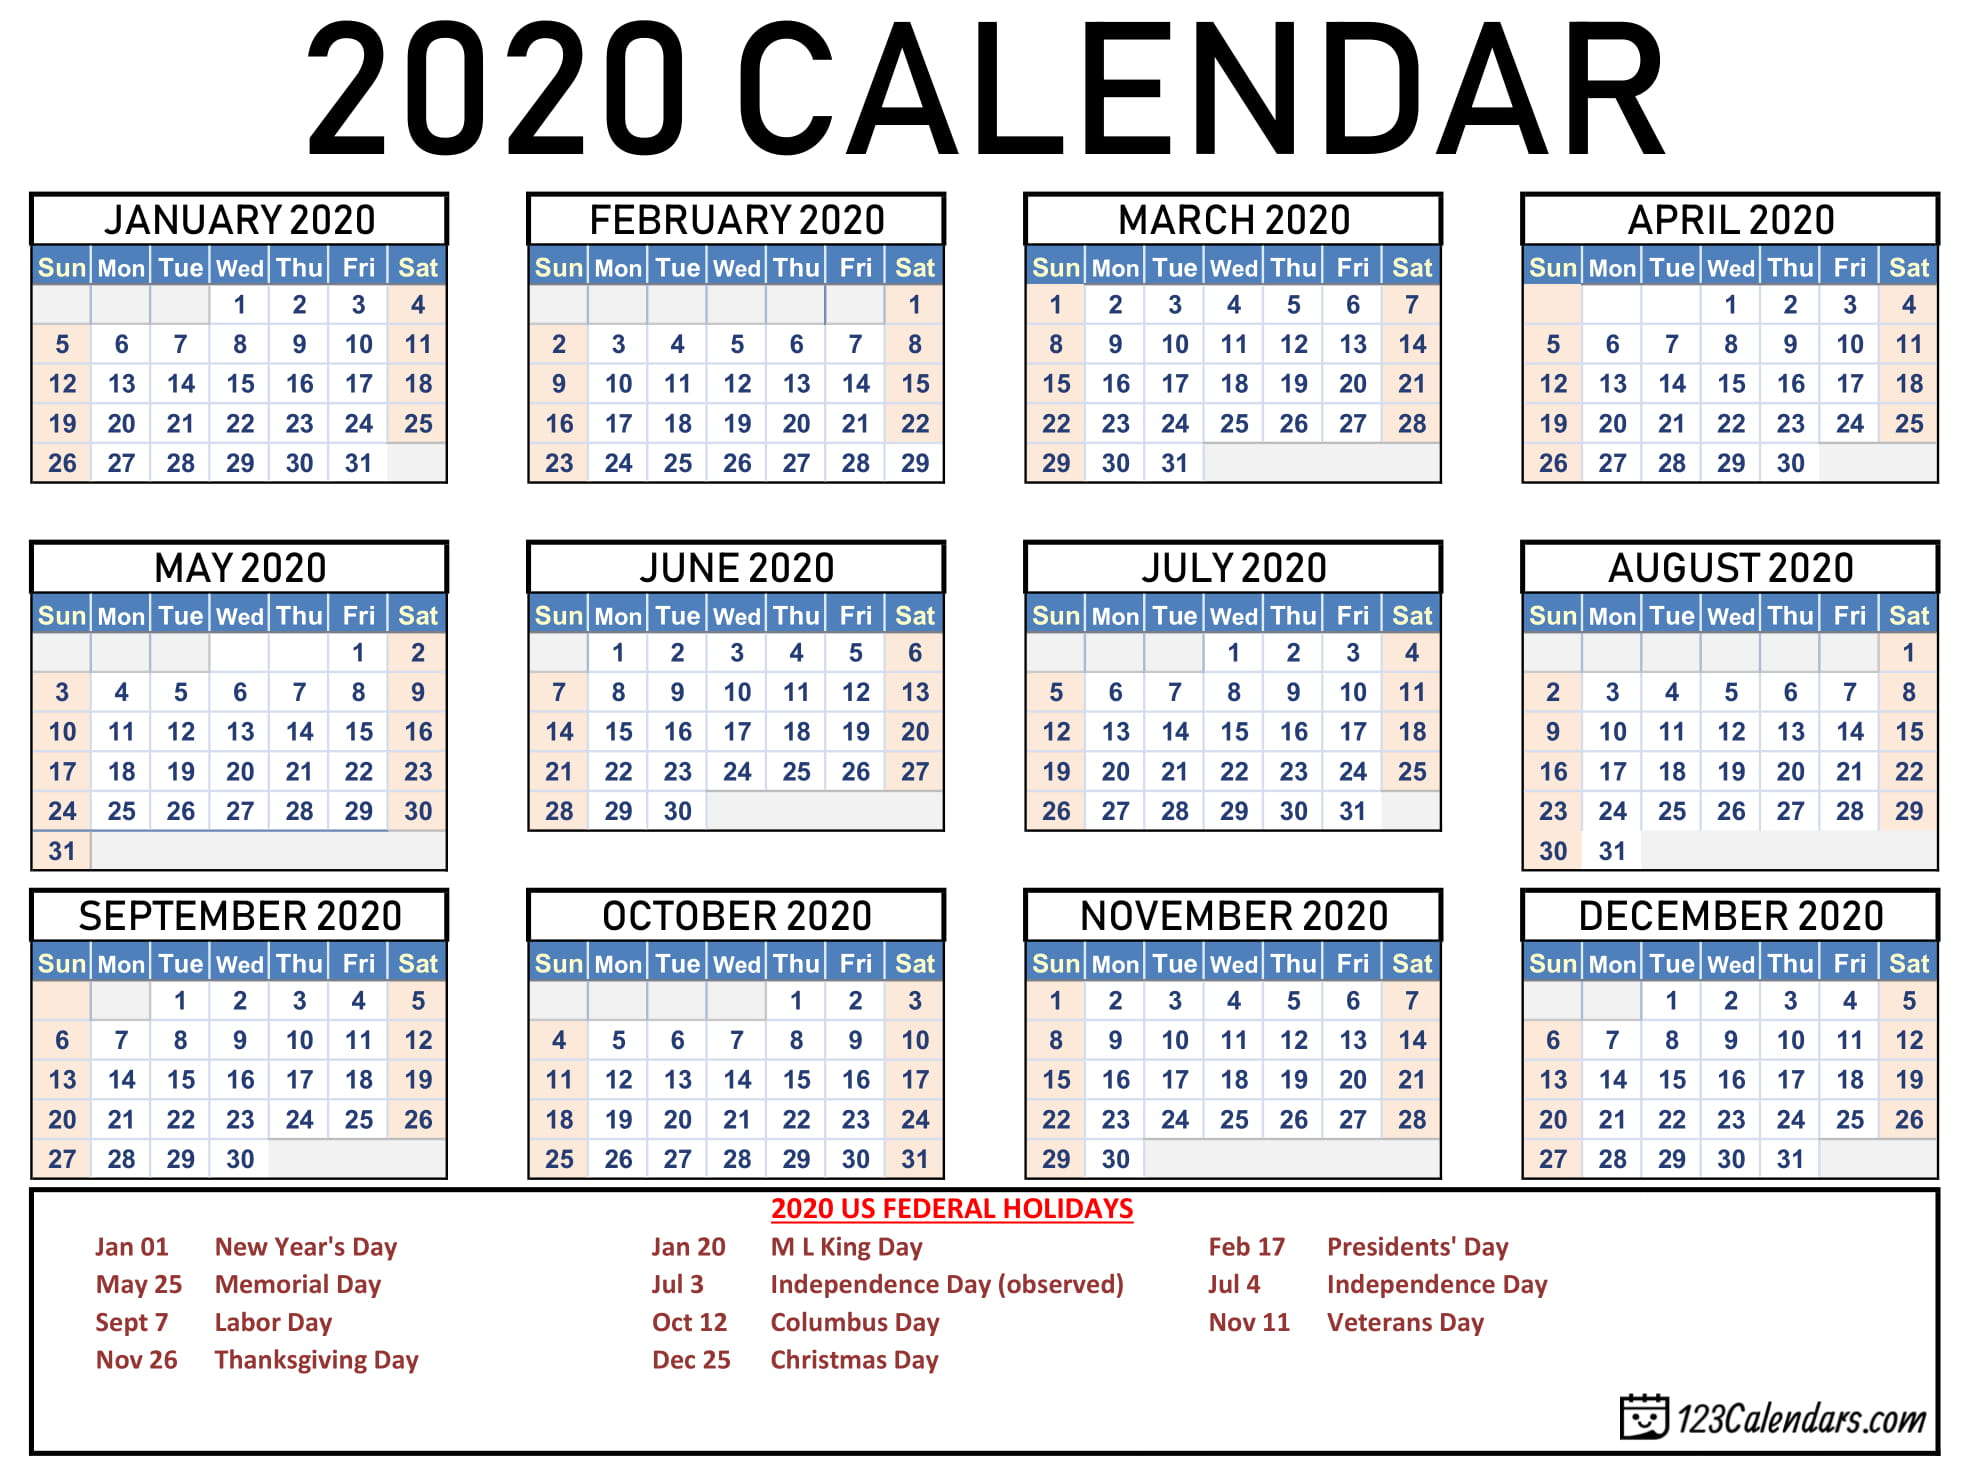 Free Printable 2020 Calendar | 123Calendars intended for Free 2020 Printable Pocket Calendar